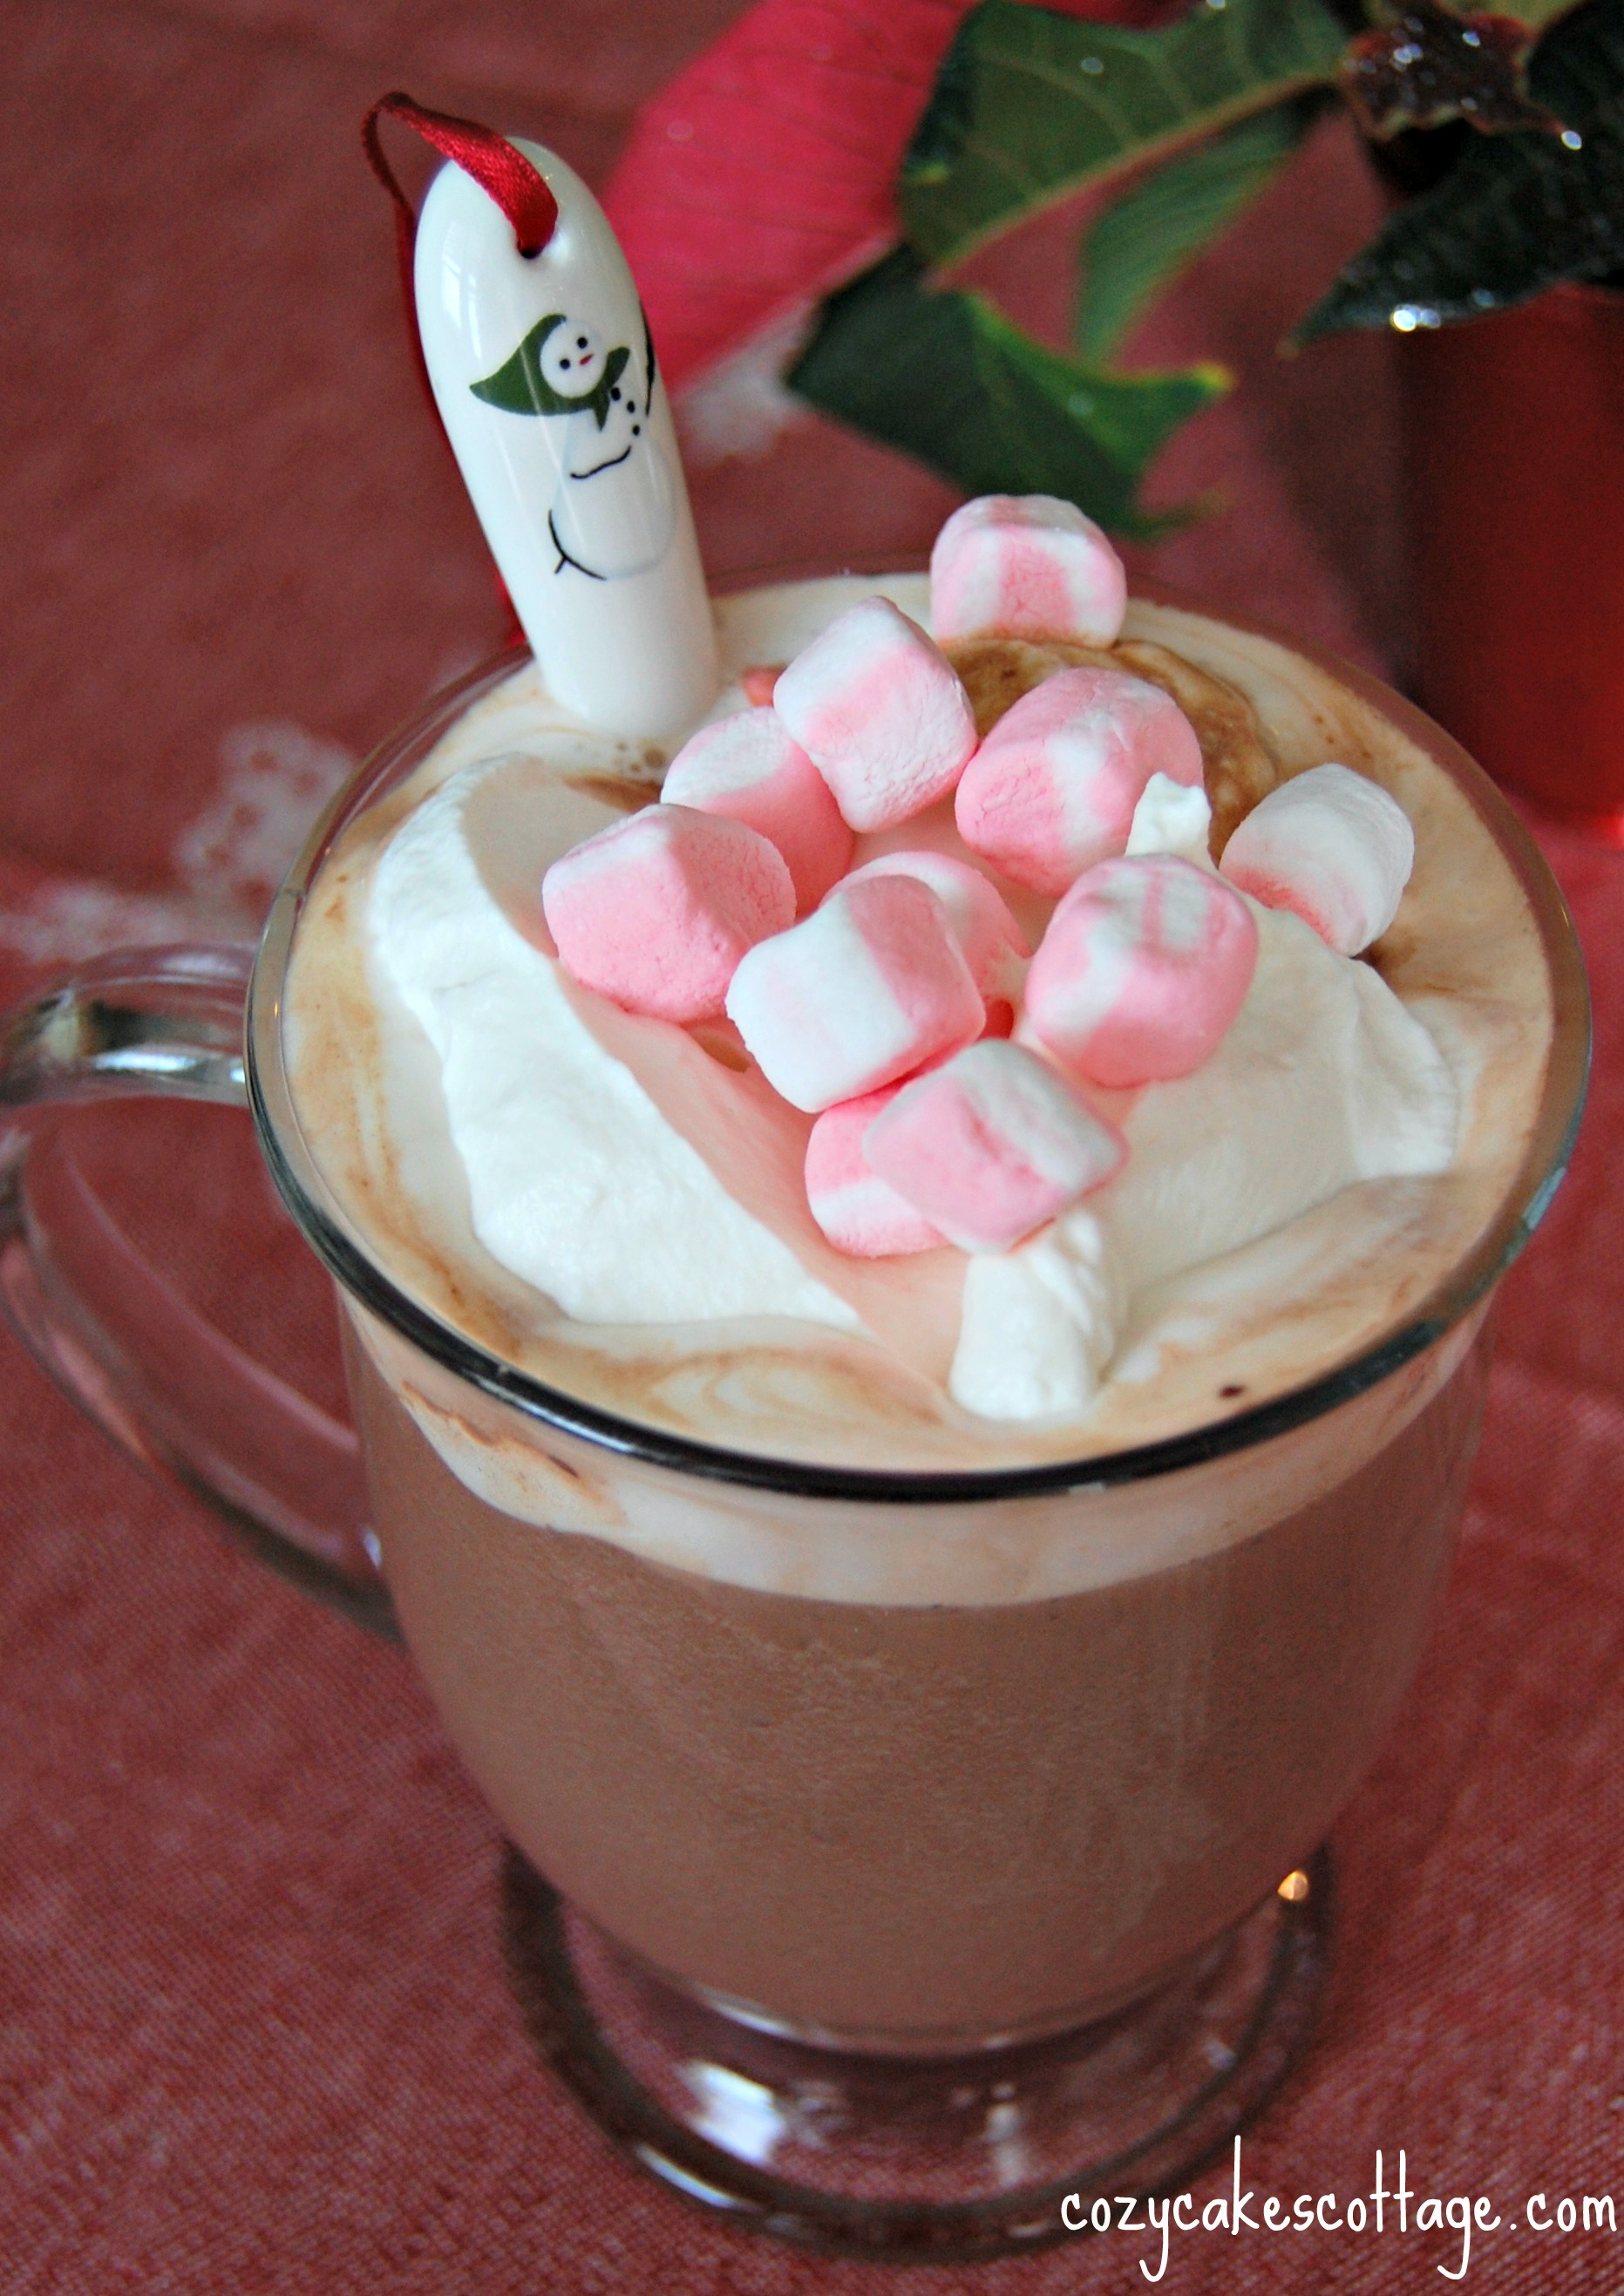 Danielle's Creamy Dreamy Hot Cocoa (with Homemade Whipped Cream)